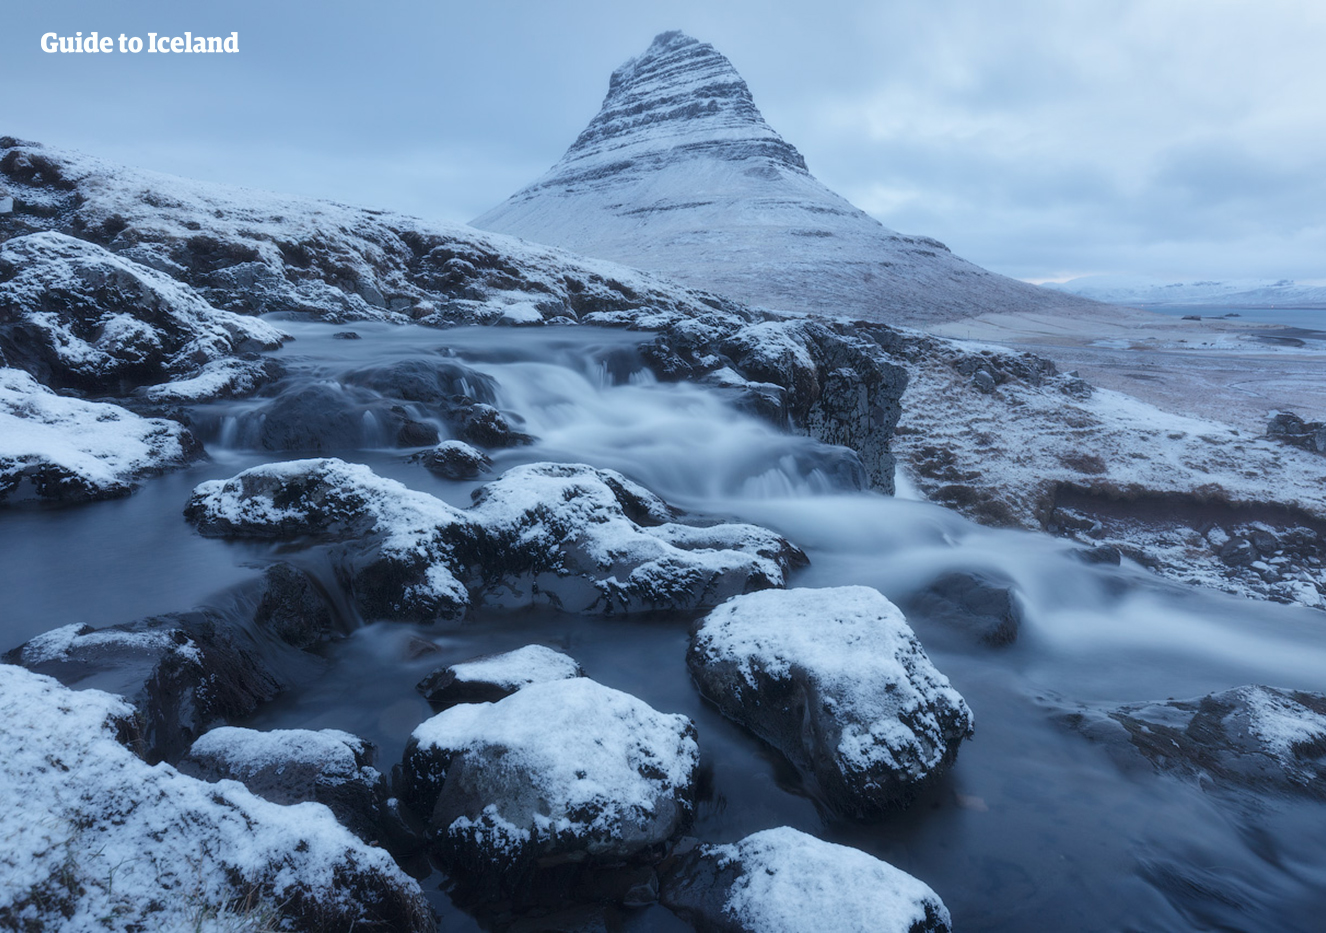 11-Day Winter Self-Drive | South Coast Elements and West Iceland - day 3